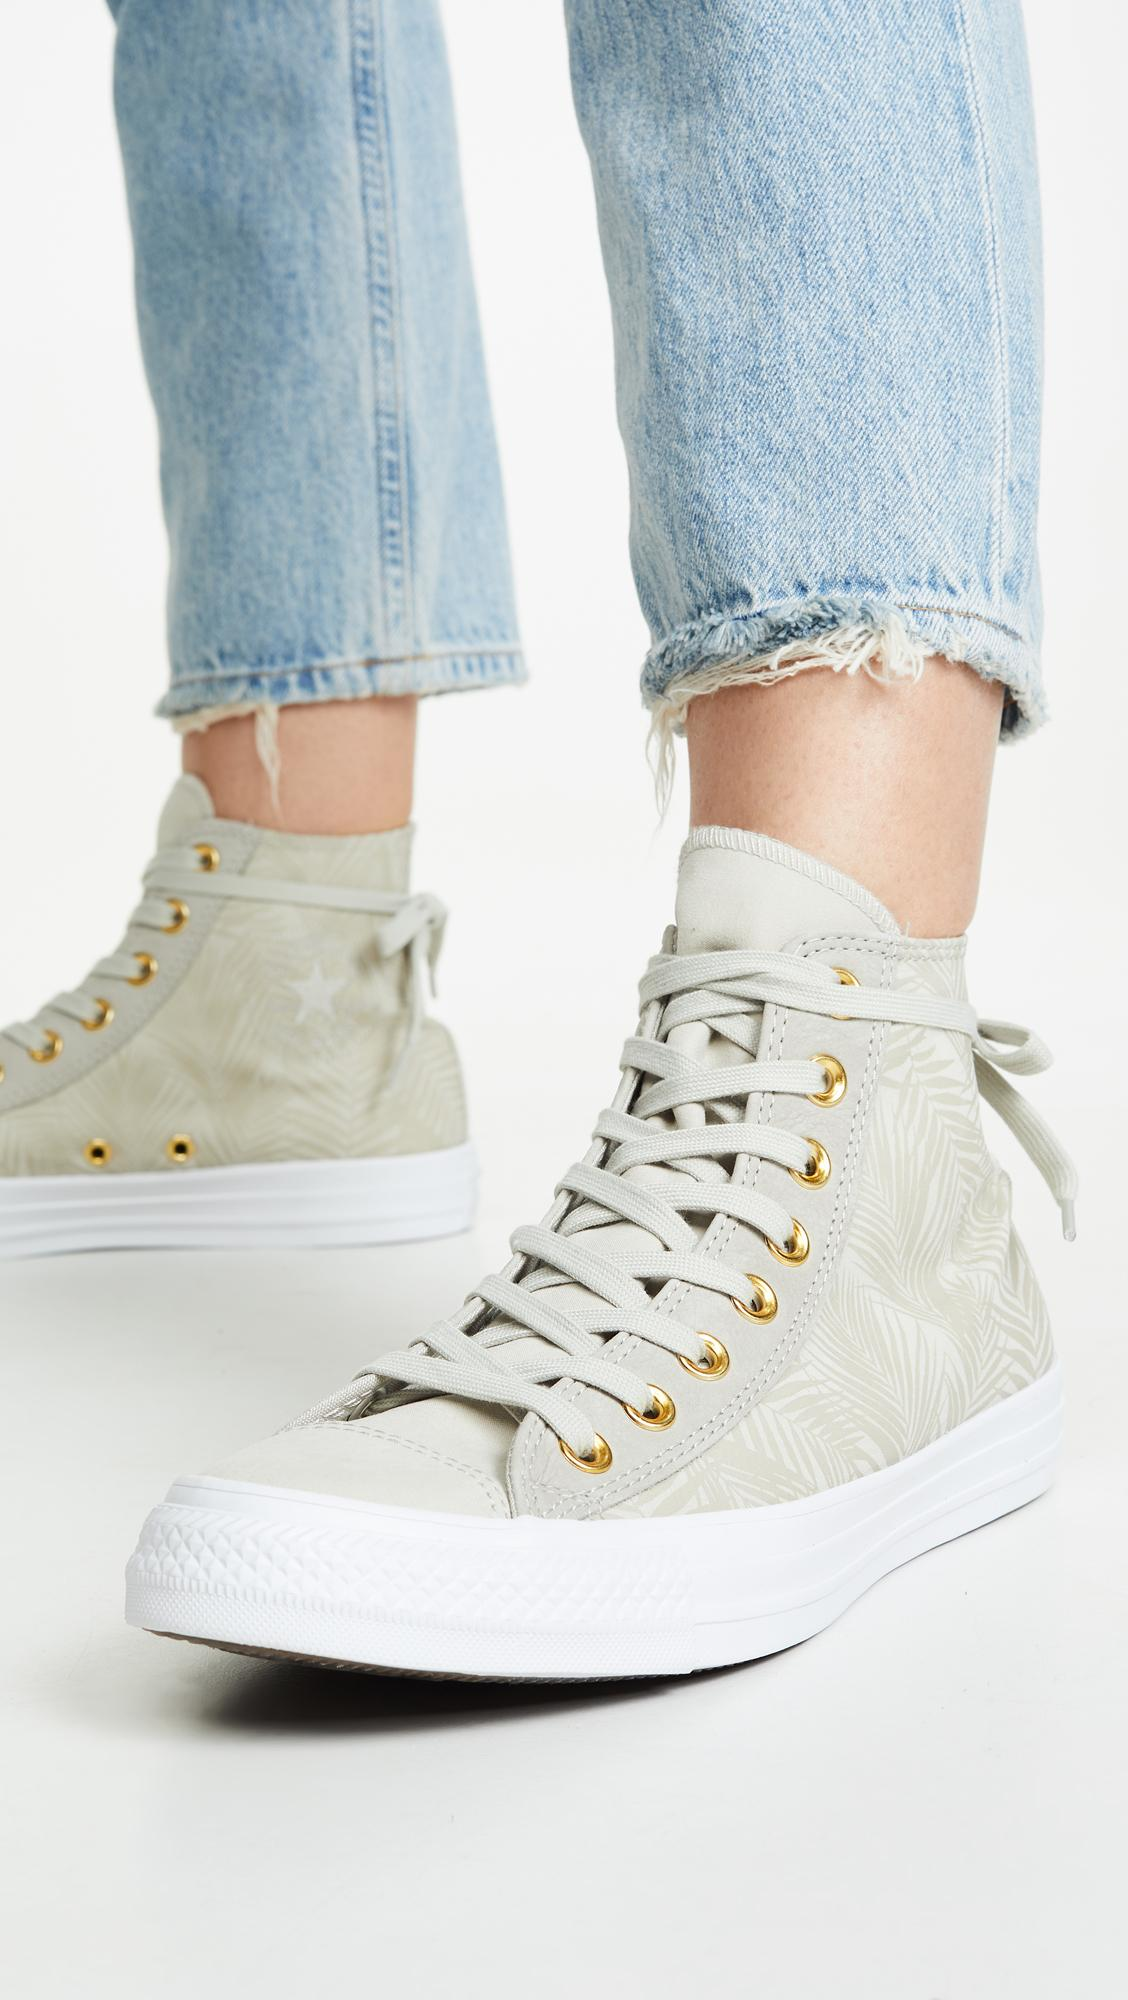 0124732b34e8 Converse - Multicolor Chuck Taylor All Star Summer High Top Palm Sneakers -  Lyst. View fullscreen